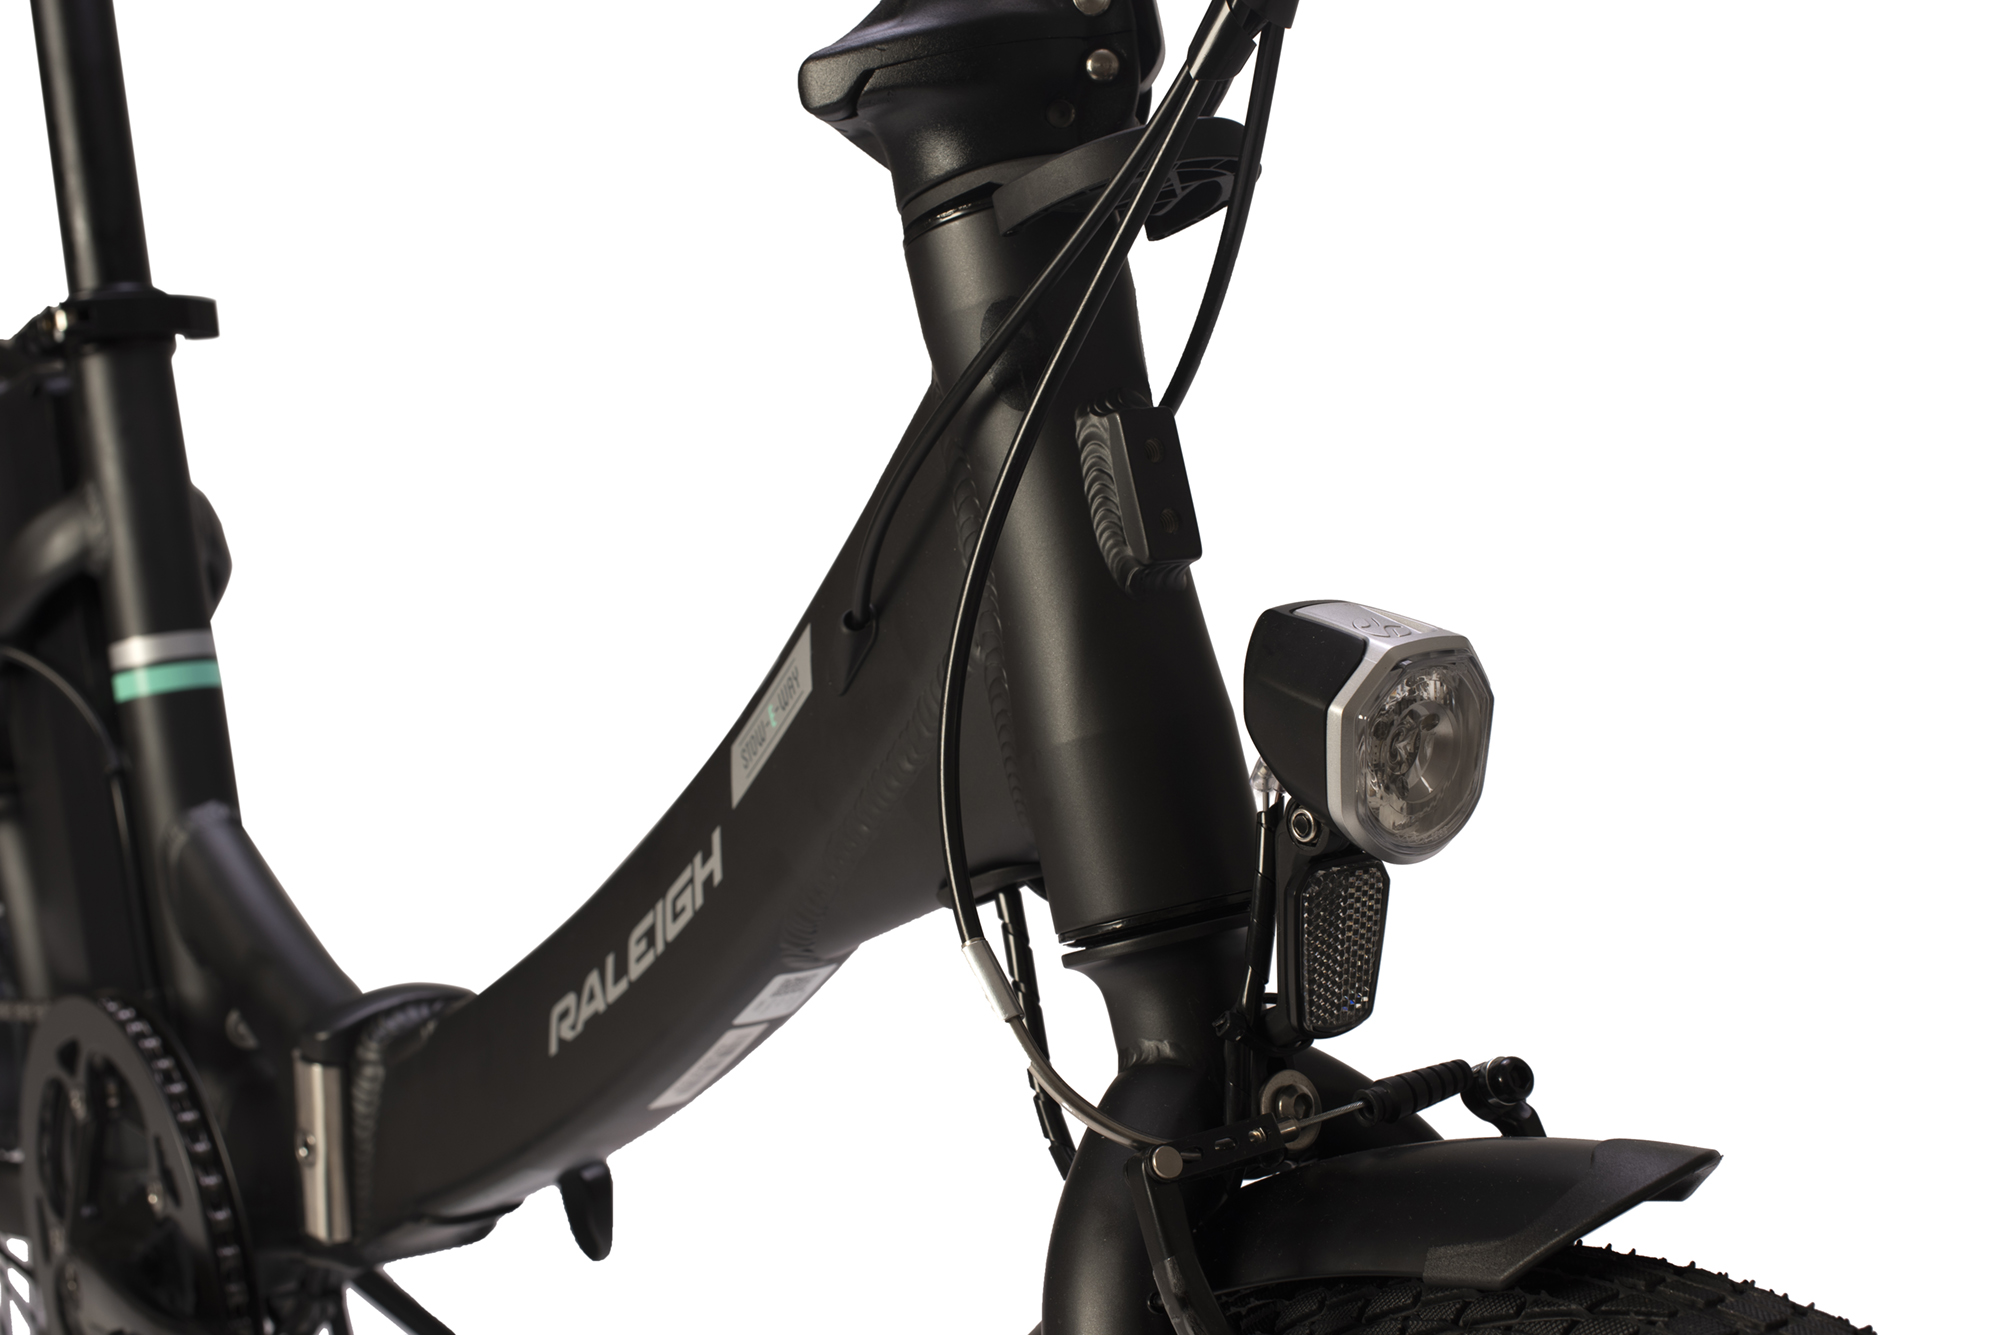 Front tube with mounted light on the Raleigh Stow-E-way folding electric bike